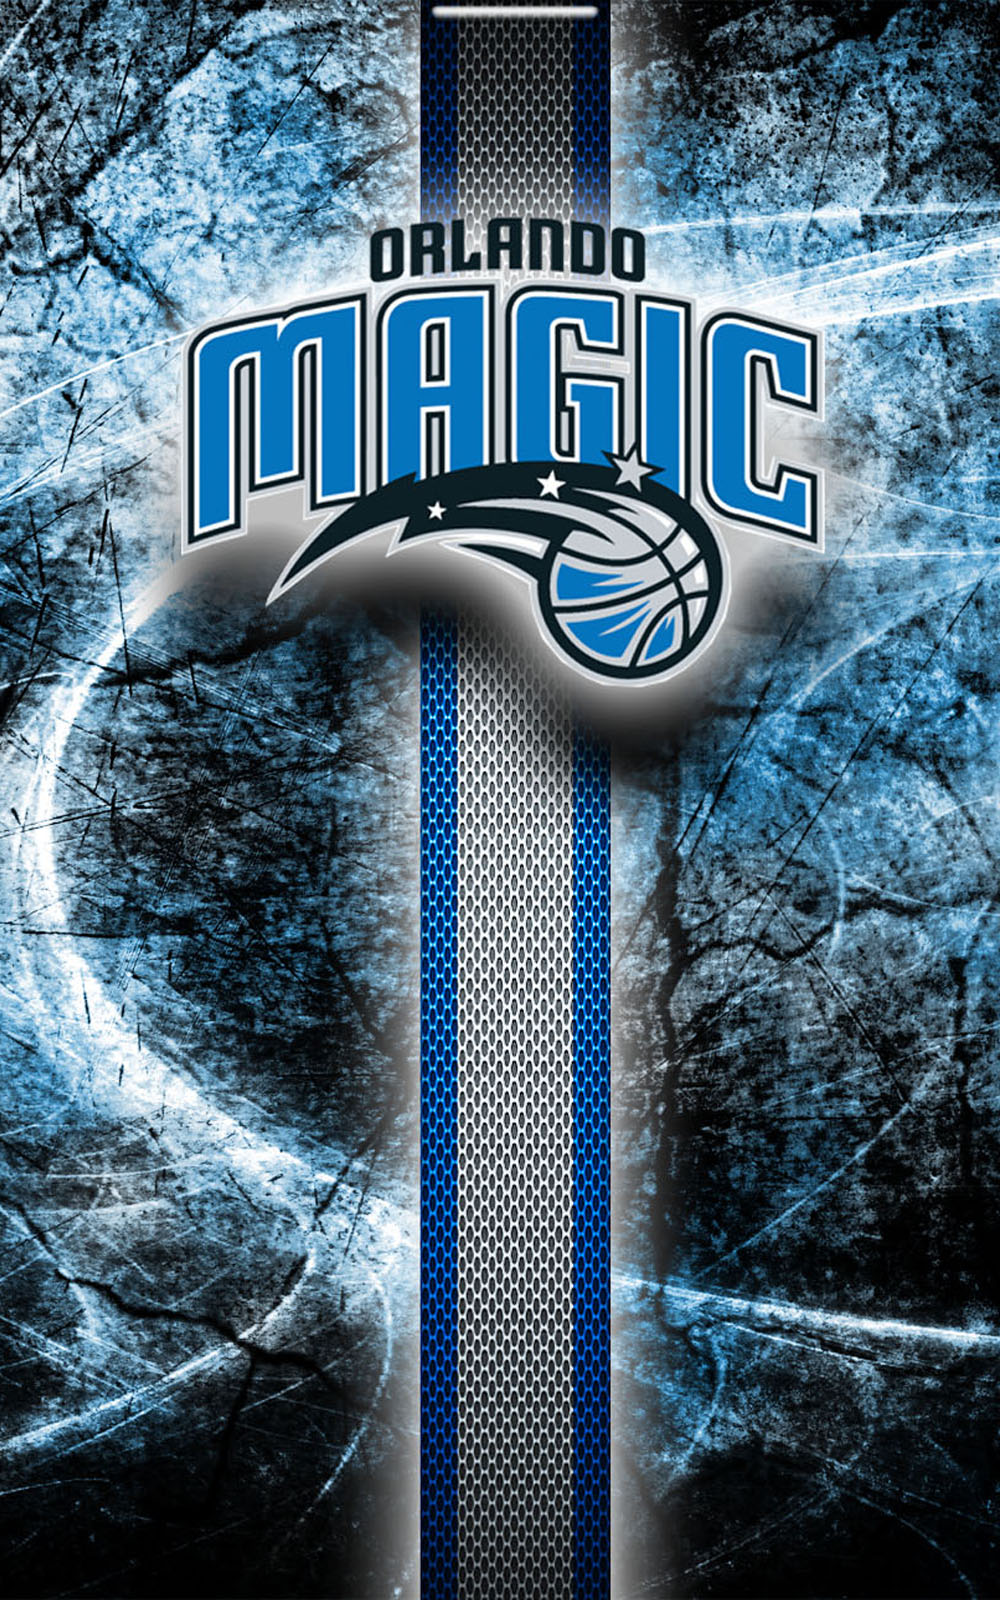 Download Wallpaper Orlando Magic Logo 2011 121586 Hd